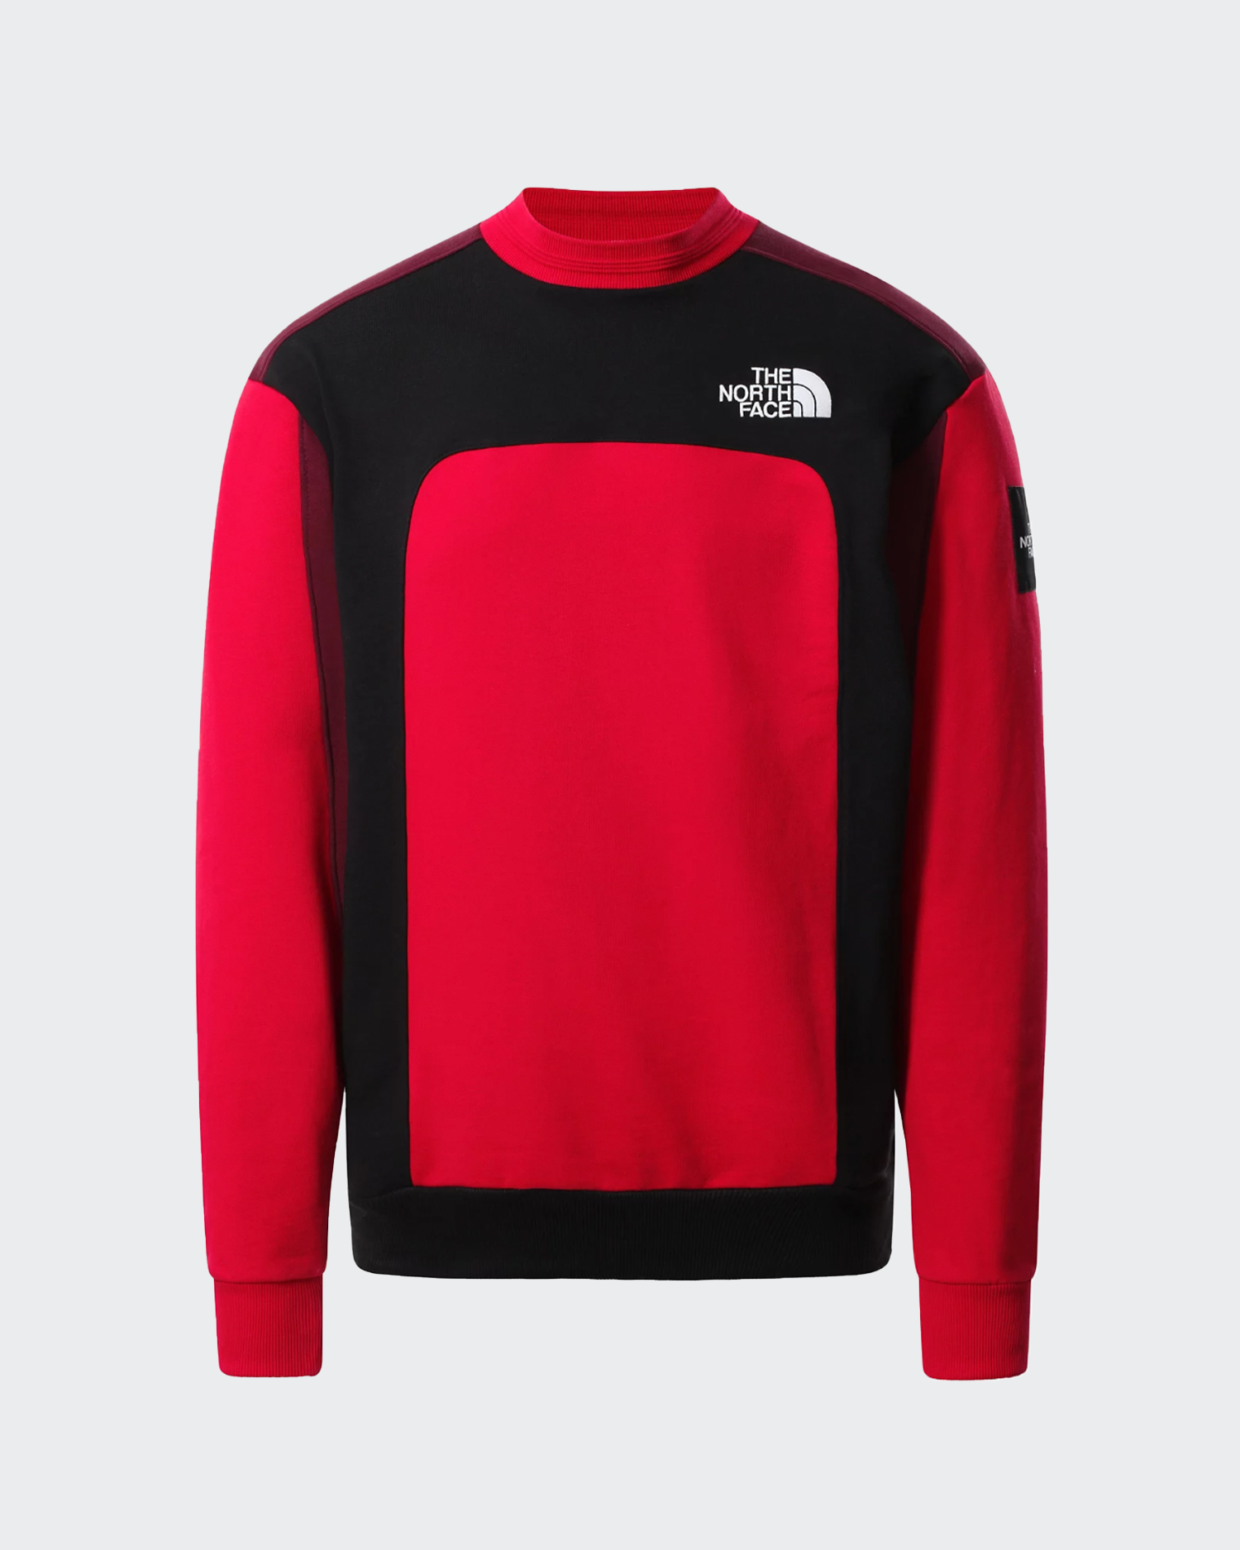 The North Face Mtn Archives Cut & Sew